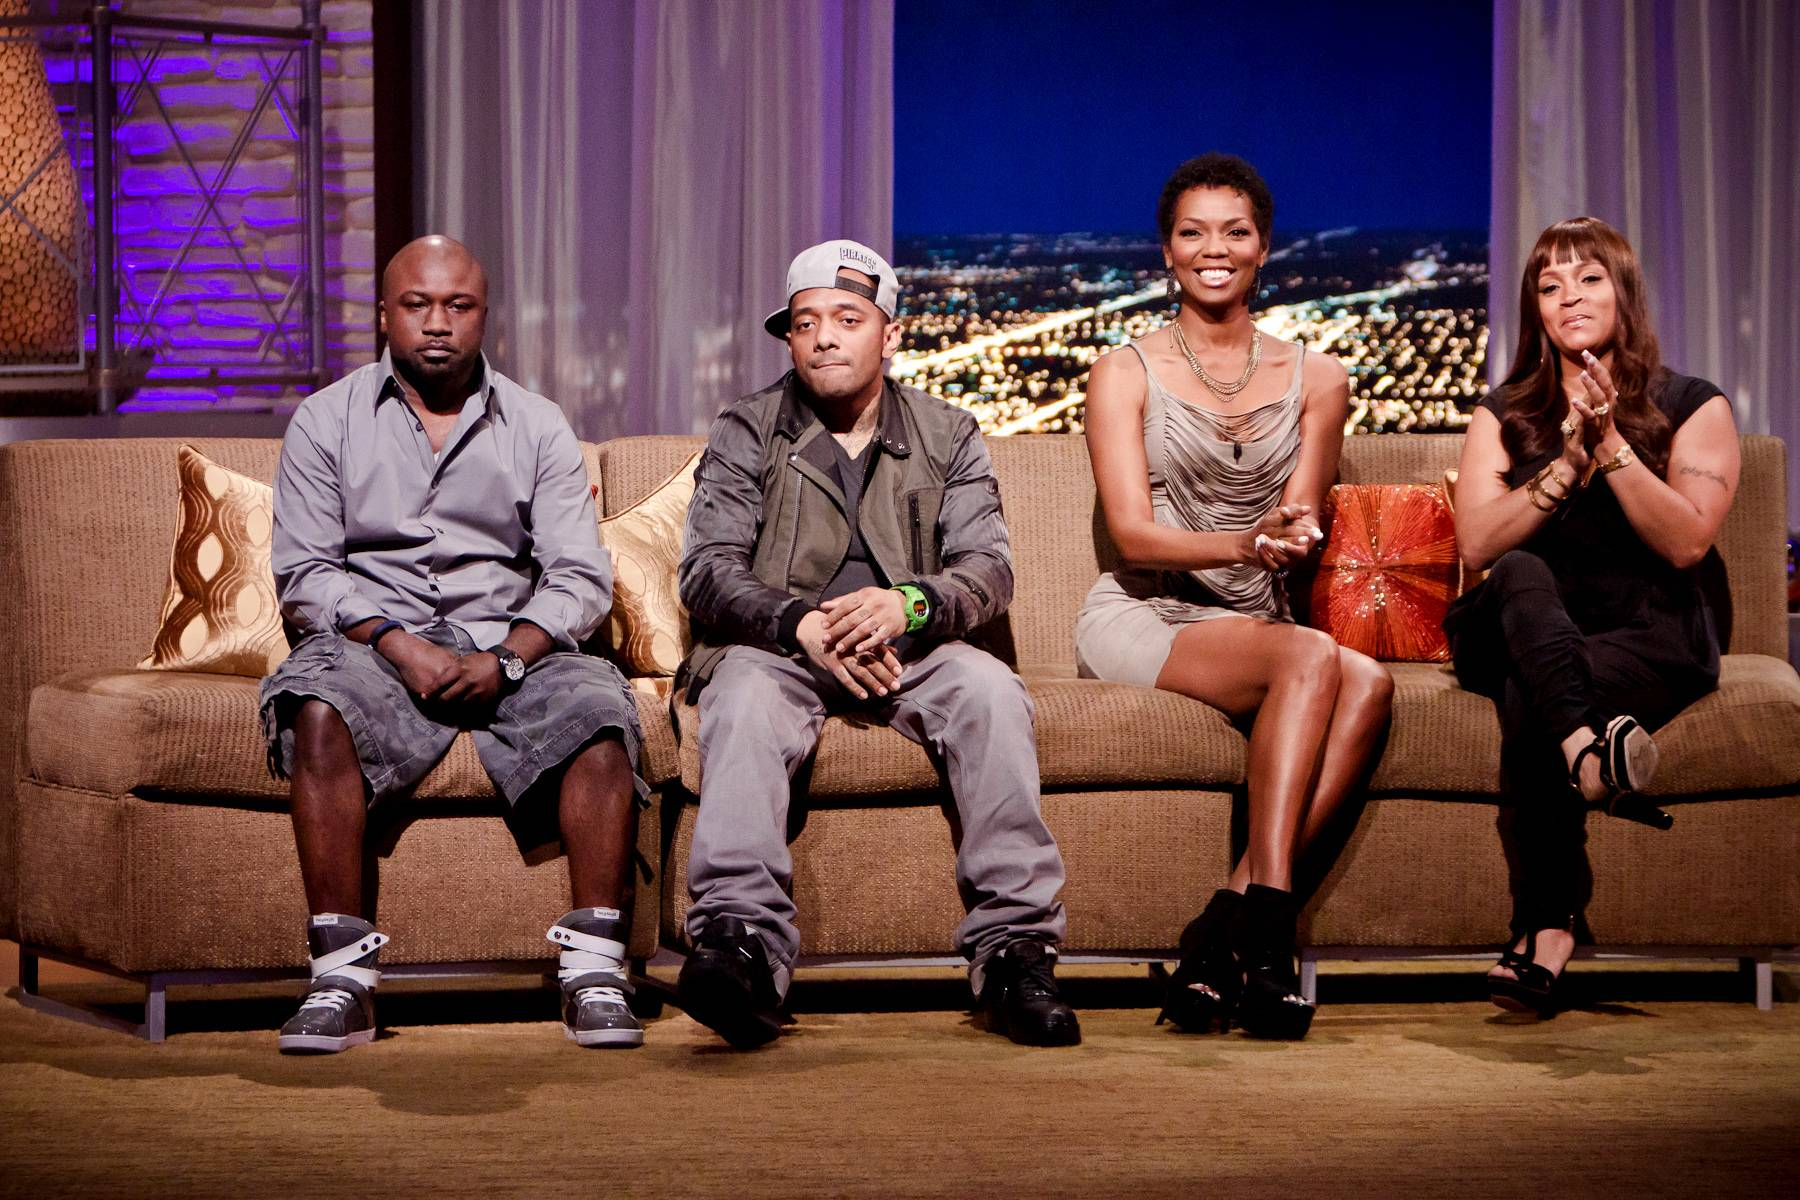 Striking a Couch Pose - The evening's guests pose for Darnell on the couch.(Photo: Darnell Williams/BET)